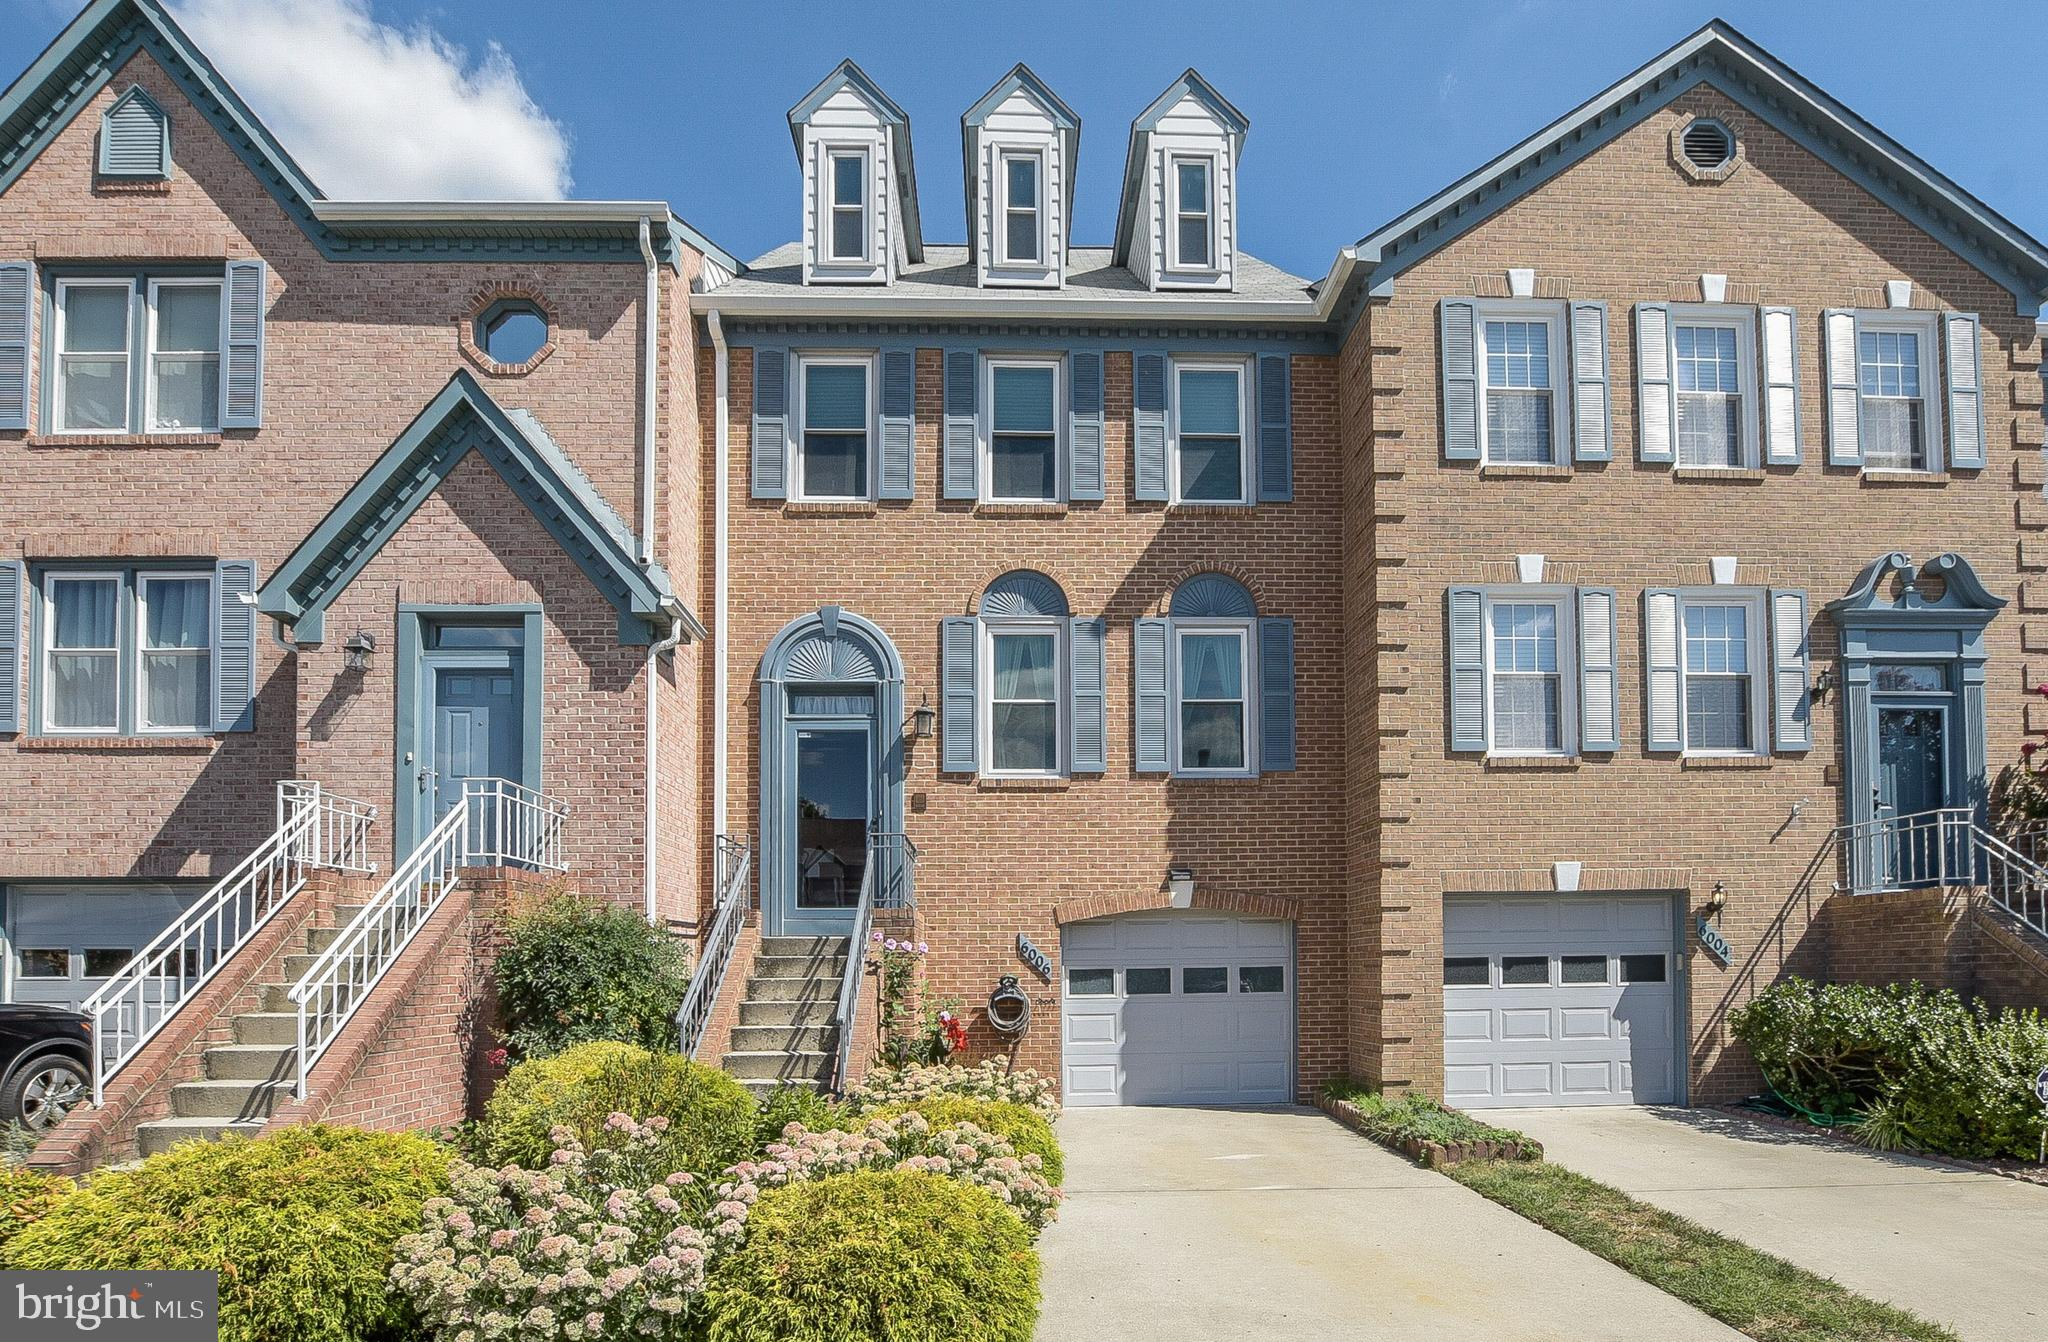 *** Open house this Sunday Sep/ 15th from 1-4 PM ** Your opportunity has arrived to own this beautiful and lovingly maintained townhouse on 4 levels in a stunning location in Kingstowne Village ** The main level has a welcoming floor plan with seamless open concept perfect for everyday living as well as entertainment, where the bright living room and the generous sized dining room open up to one another with adjoining large gorgeous kitchen which is tastefully updated with granite counters, stainless-steel appliances, recessed lighting, A must see exterior a perfect outdoor hangout for friends and family, Over 20K spent for patio and landscape design and garden with Fire-Pit fenced in, Wooden Deck, Wood burning fireplace in loft level & 2nd wood burning fire place in lower level, 1 car garage, wood floors, HVAC System was installed in 2018, Triple pane windows and sliding doors, Wine Cellar, Close to Shopping areas and Metro & much more ......